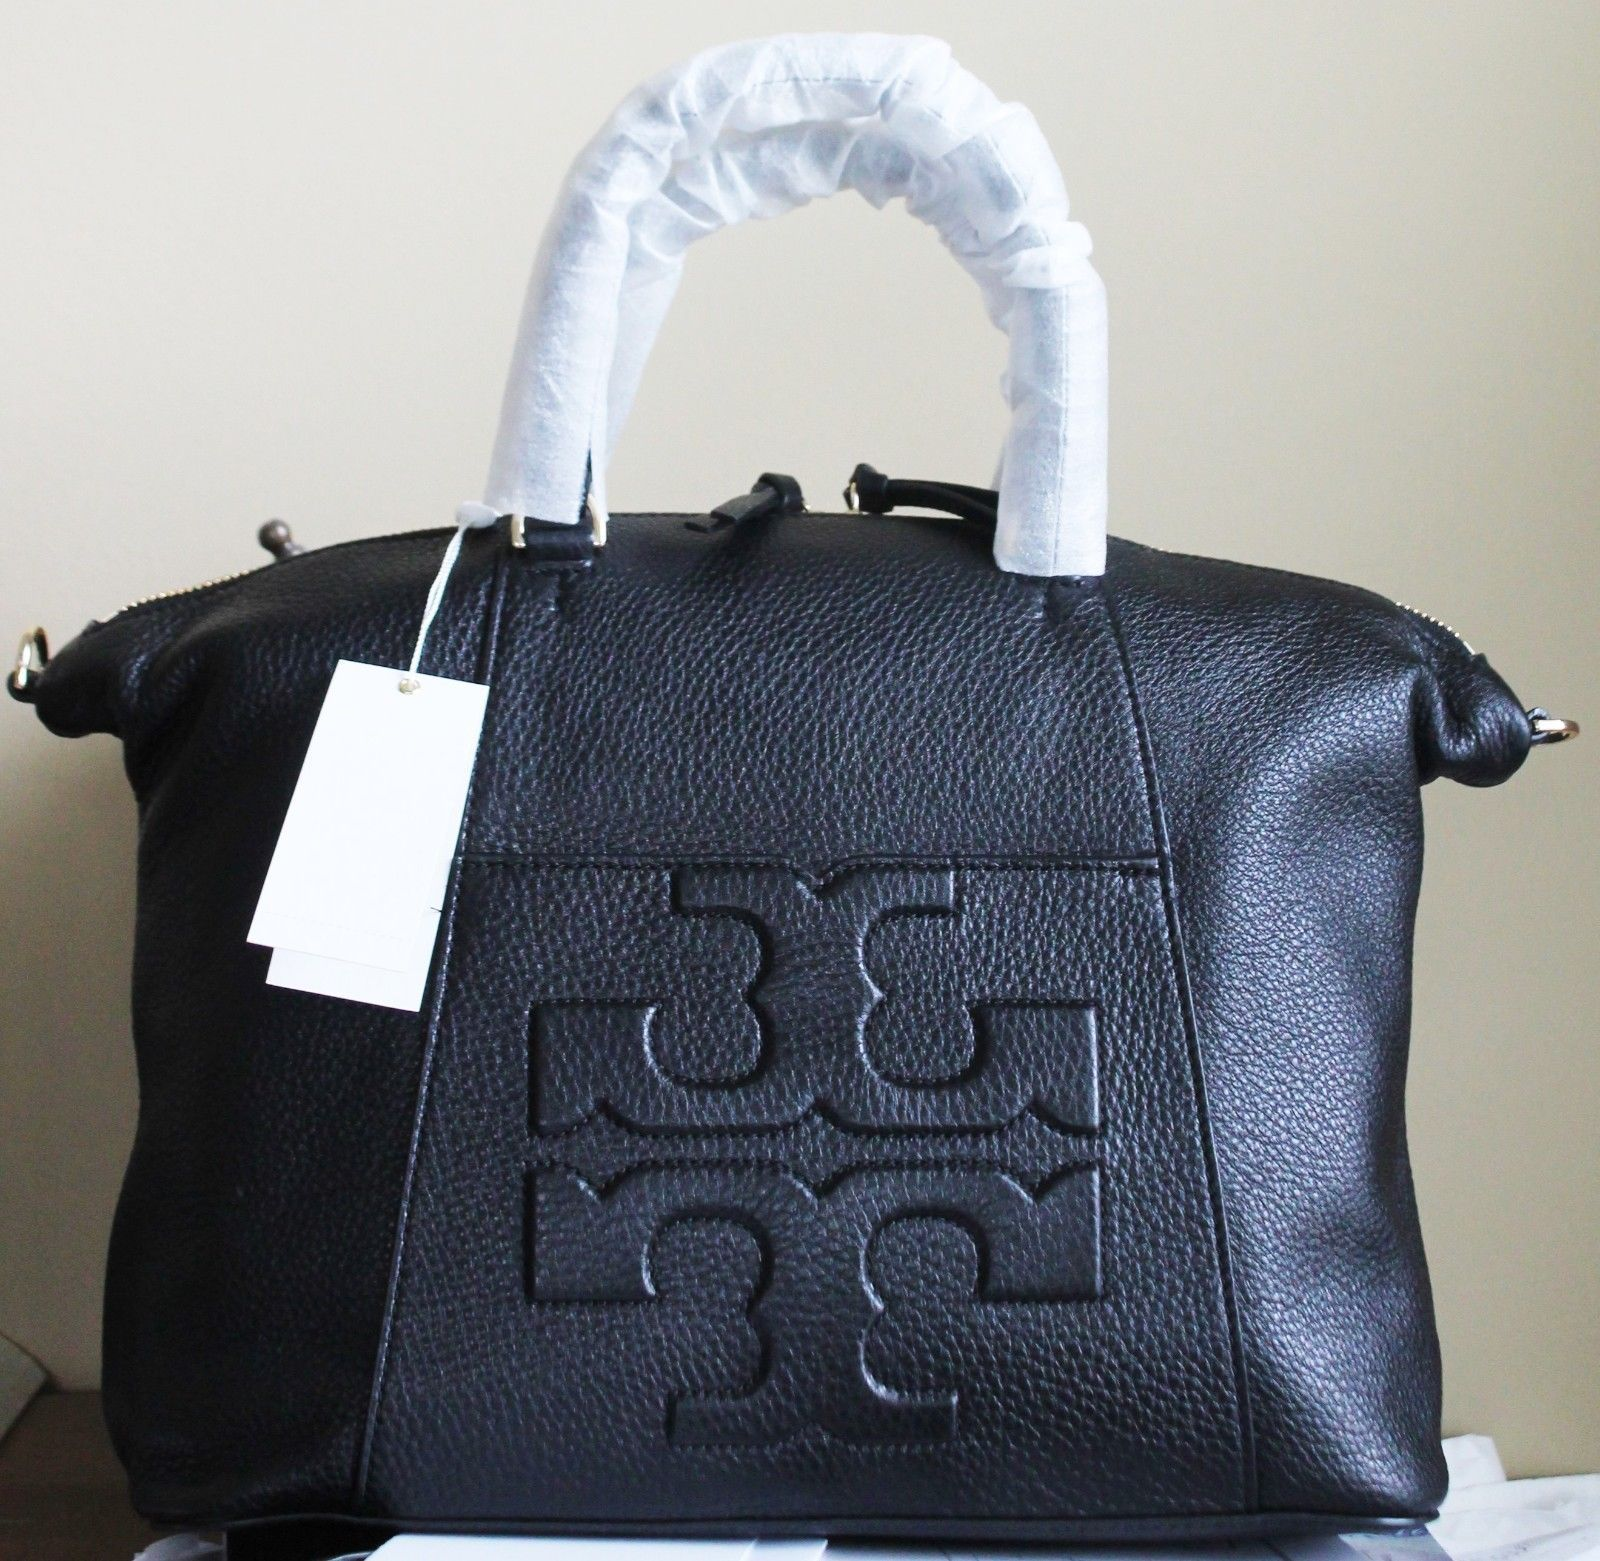 5ce77a6e58ee  495 TORY BURCH BOMBE T MEDIUM SLOUCHY SATCHEL TOTE SHOULDER BAG BLACK  LEATHER